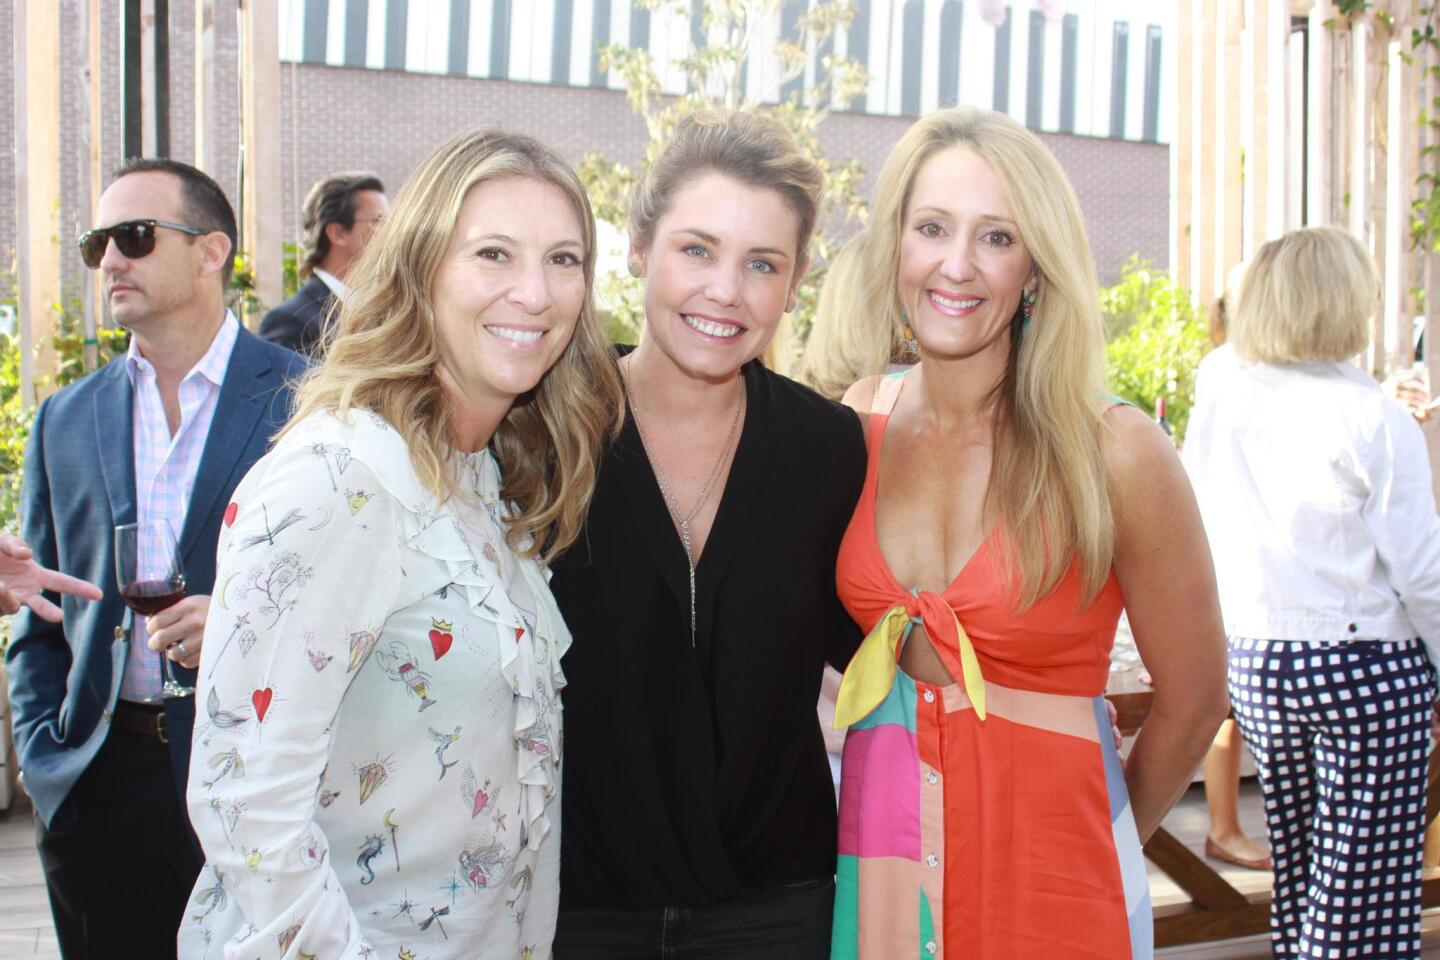 Amy Carr, Jewel Ball chair Jorie Fischer and Katherine Cassidy attend Las Patronas' fundraising cocktail party at The LOT movie theater, April 27, 2017.